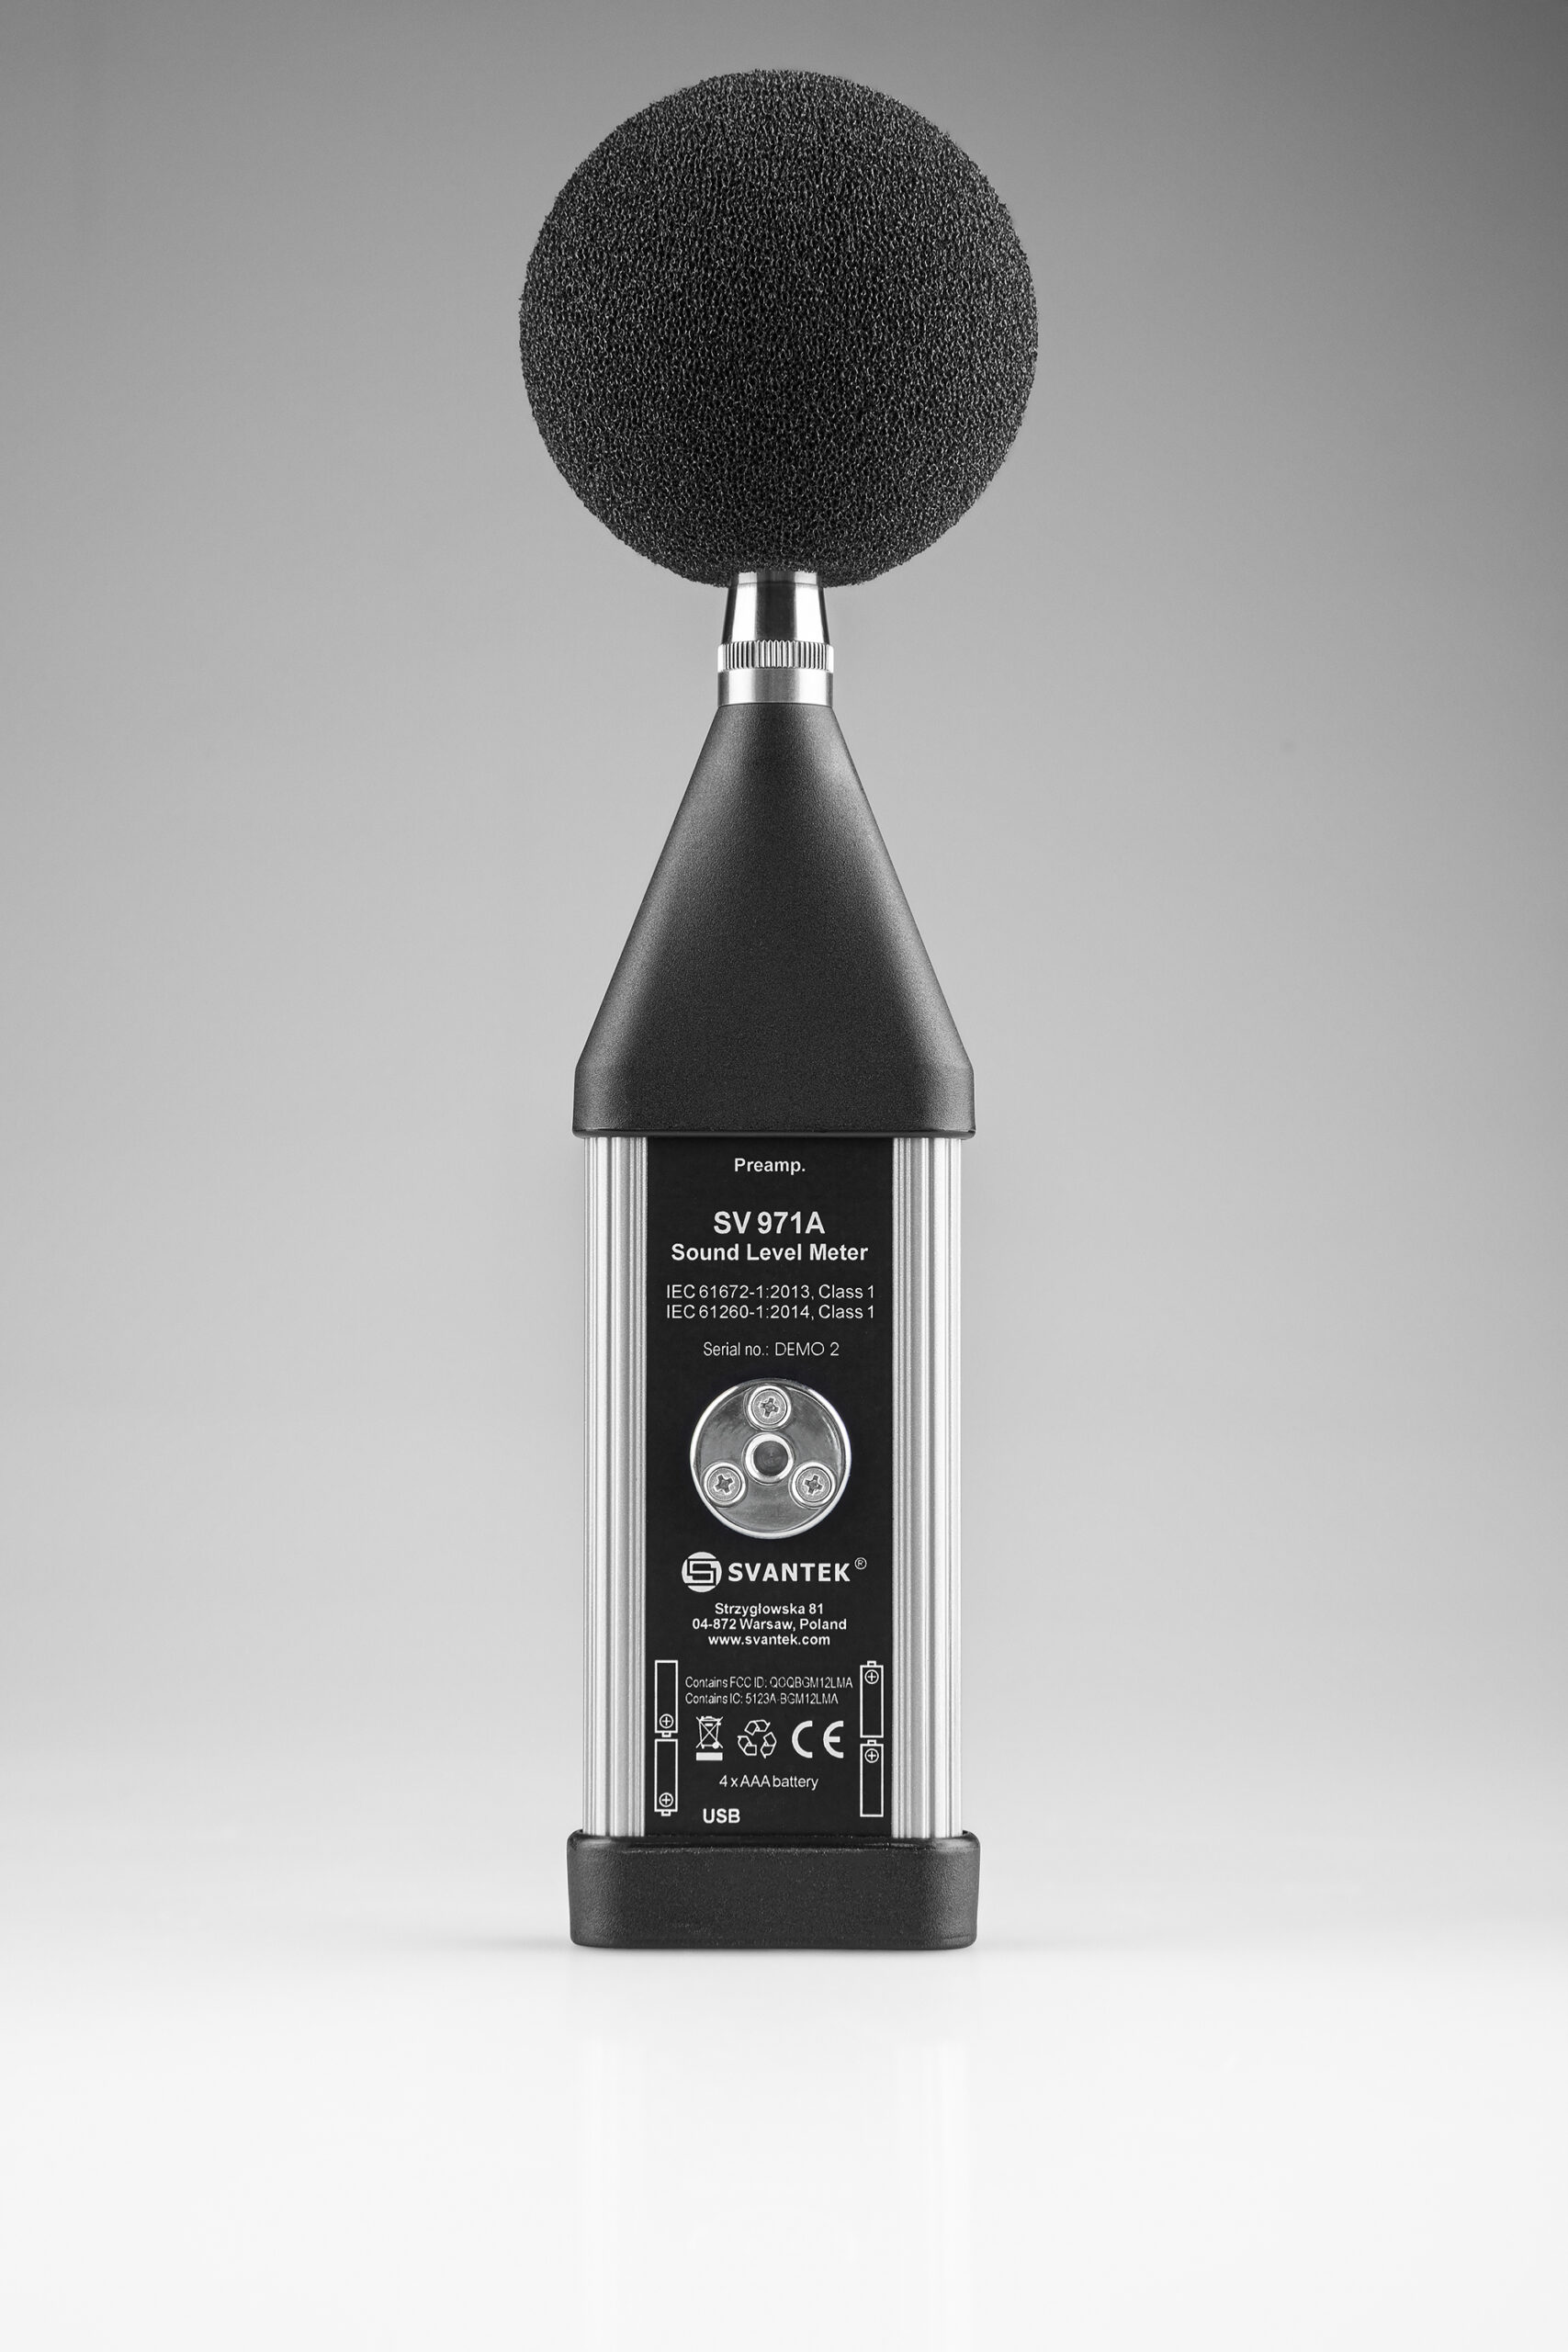 SV 971A Compact Sound Level Meter